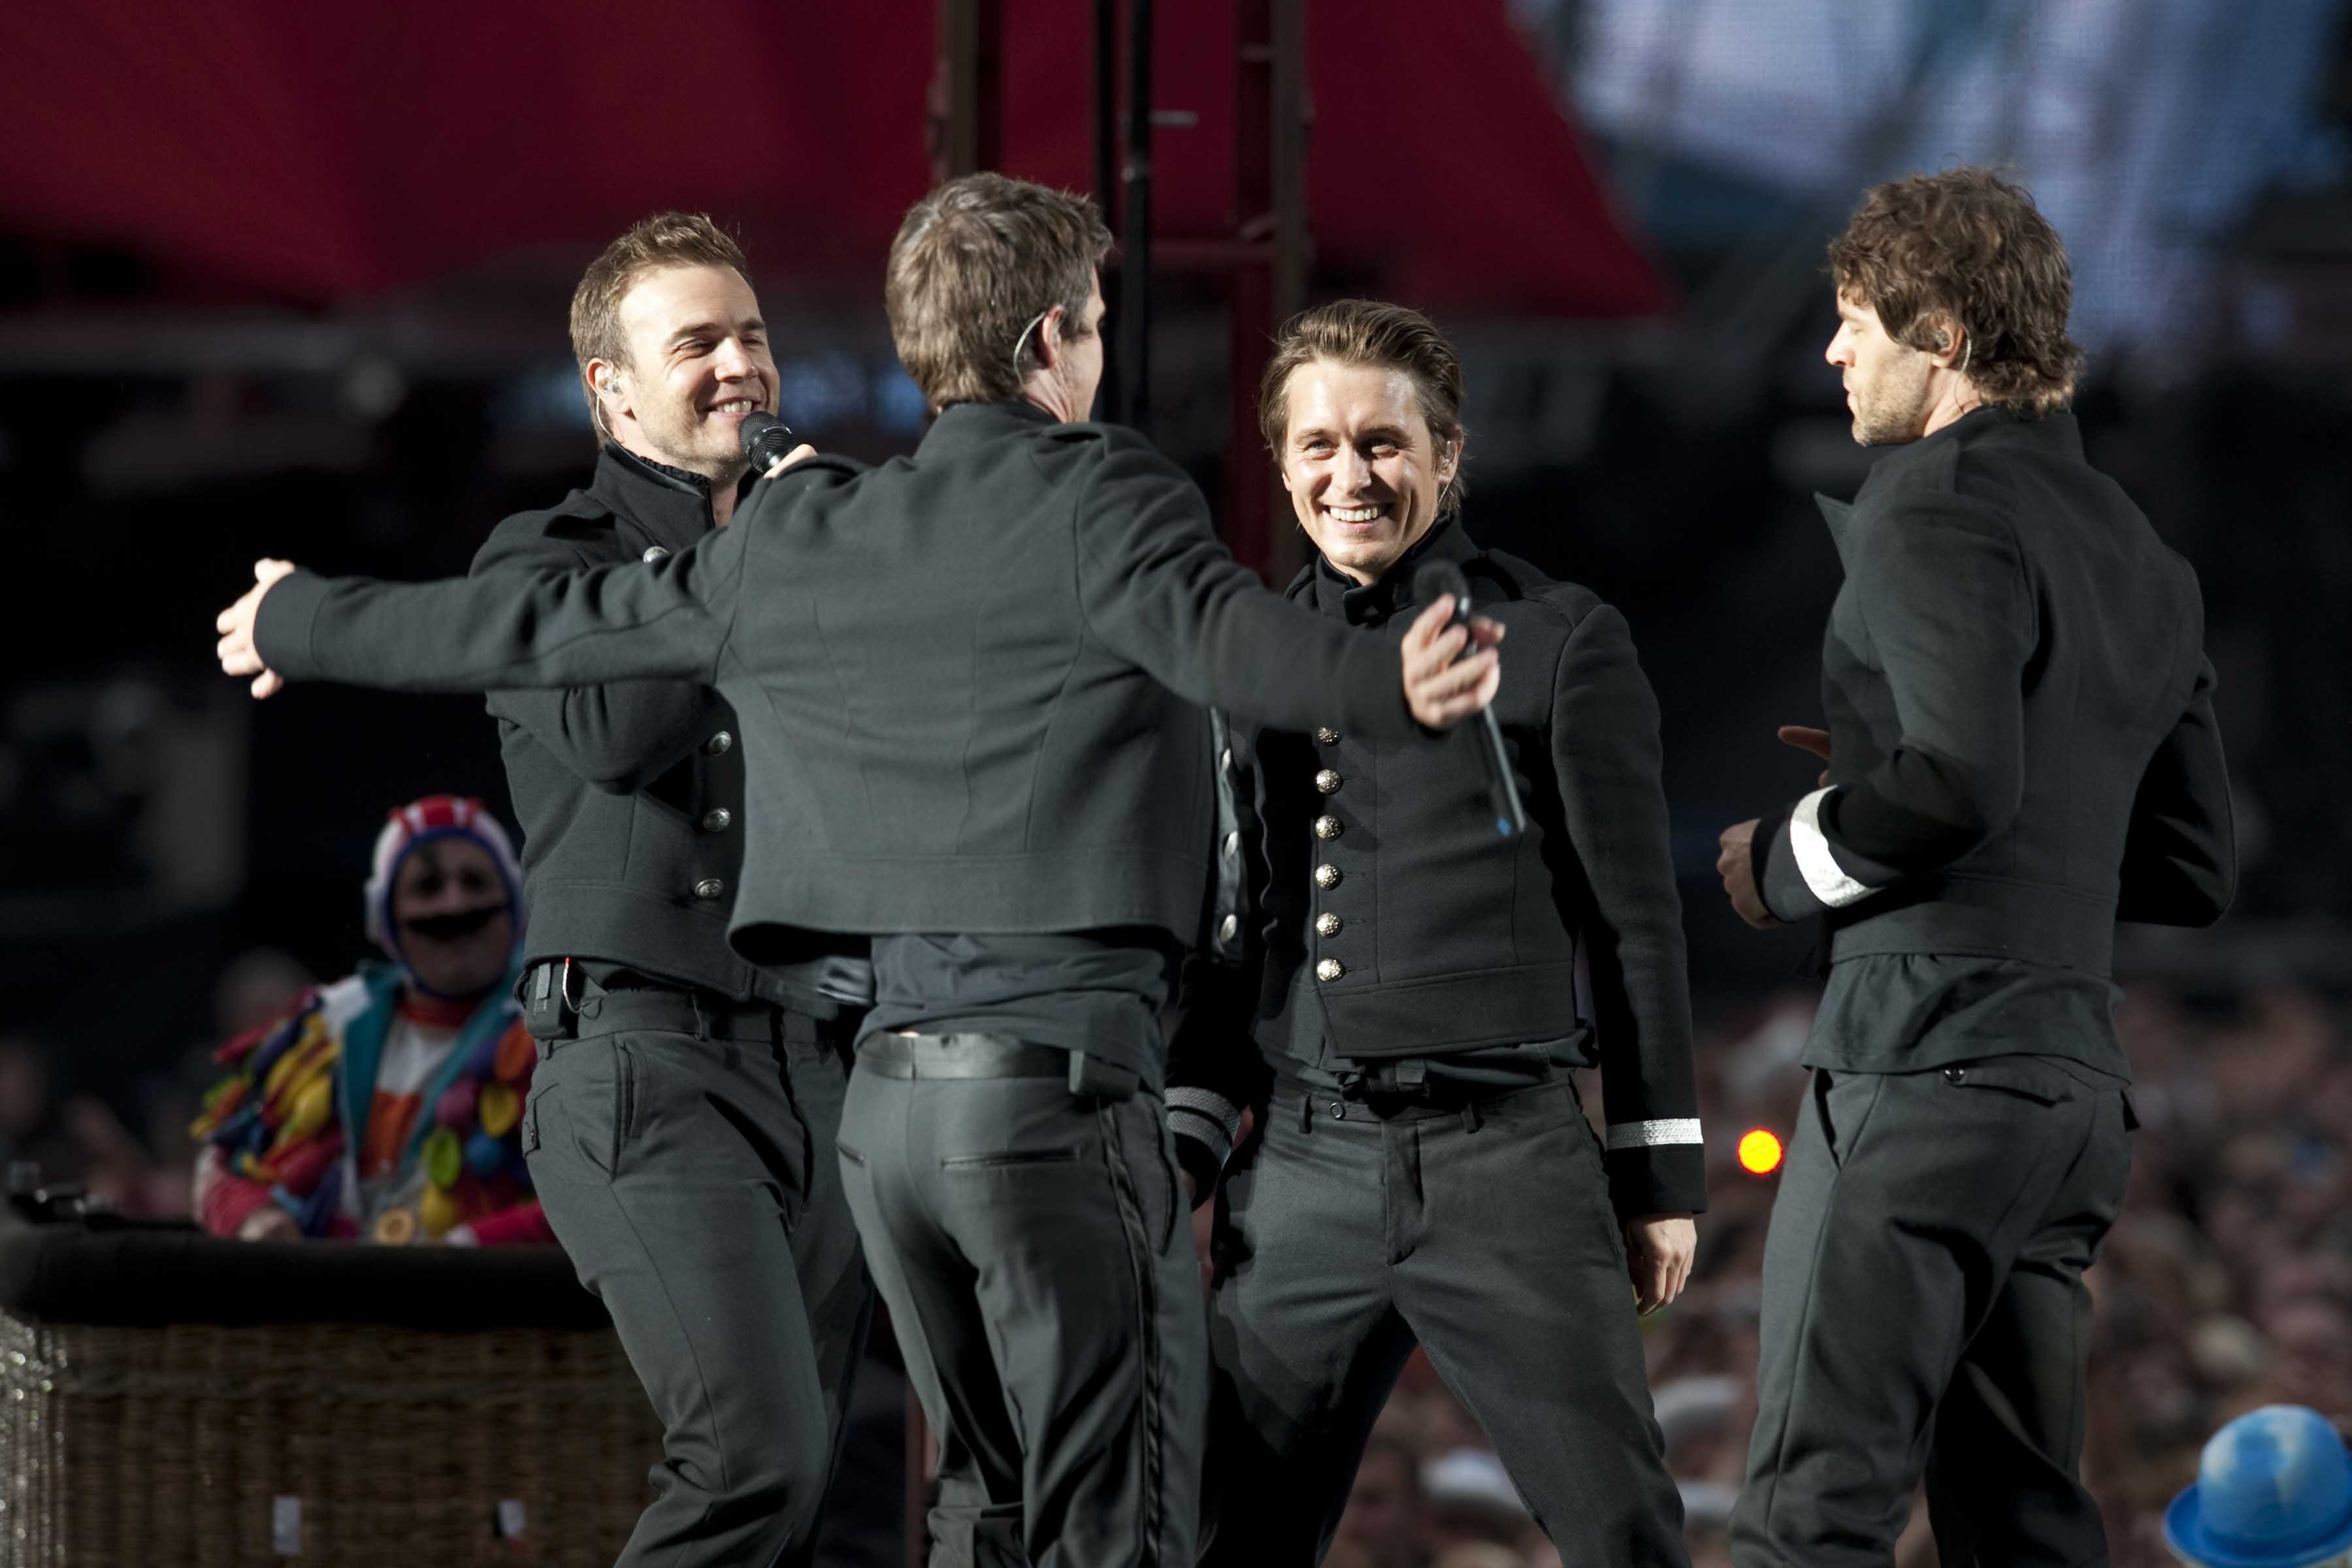 31839, GLASGOW, SCOTLAND - Friday June 19 2009. **UK PAPERS OUT** (L-R) Gary Barlow, Jason Orange, Mark Owen and Howard Donald of the reformed British boy band Take That take their Circus tour to Glasgow's Hampden Stadium., Image: 35550199, License: Rights-managed, Restrictions: UK PAPERS OUT, Model Release: no, Credit line: Profimedia, Pacific coast news